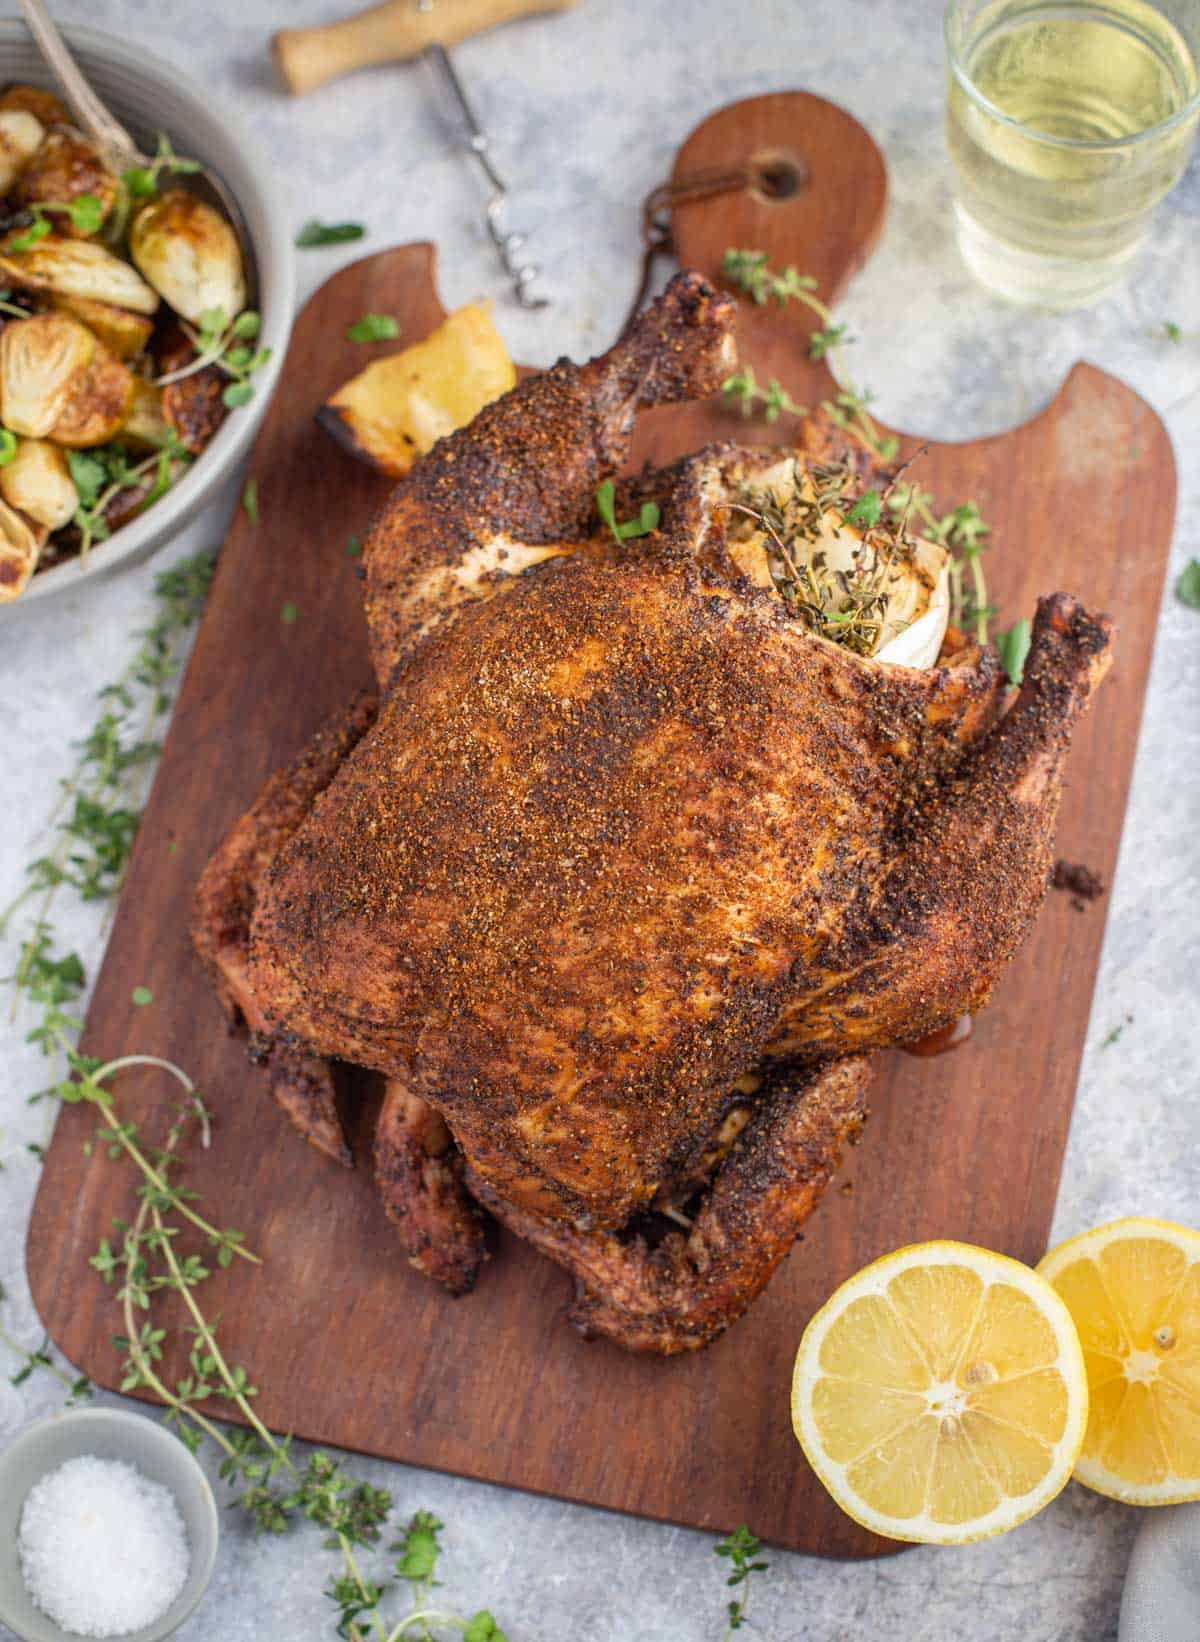 A whole chicken grilled in a pellet smoker on a cutting board